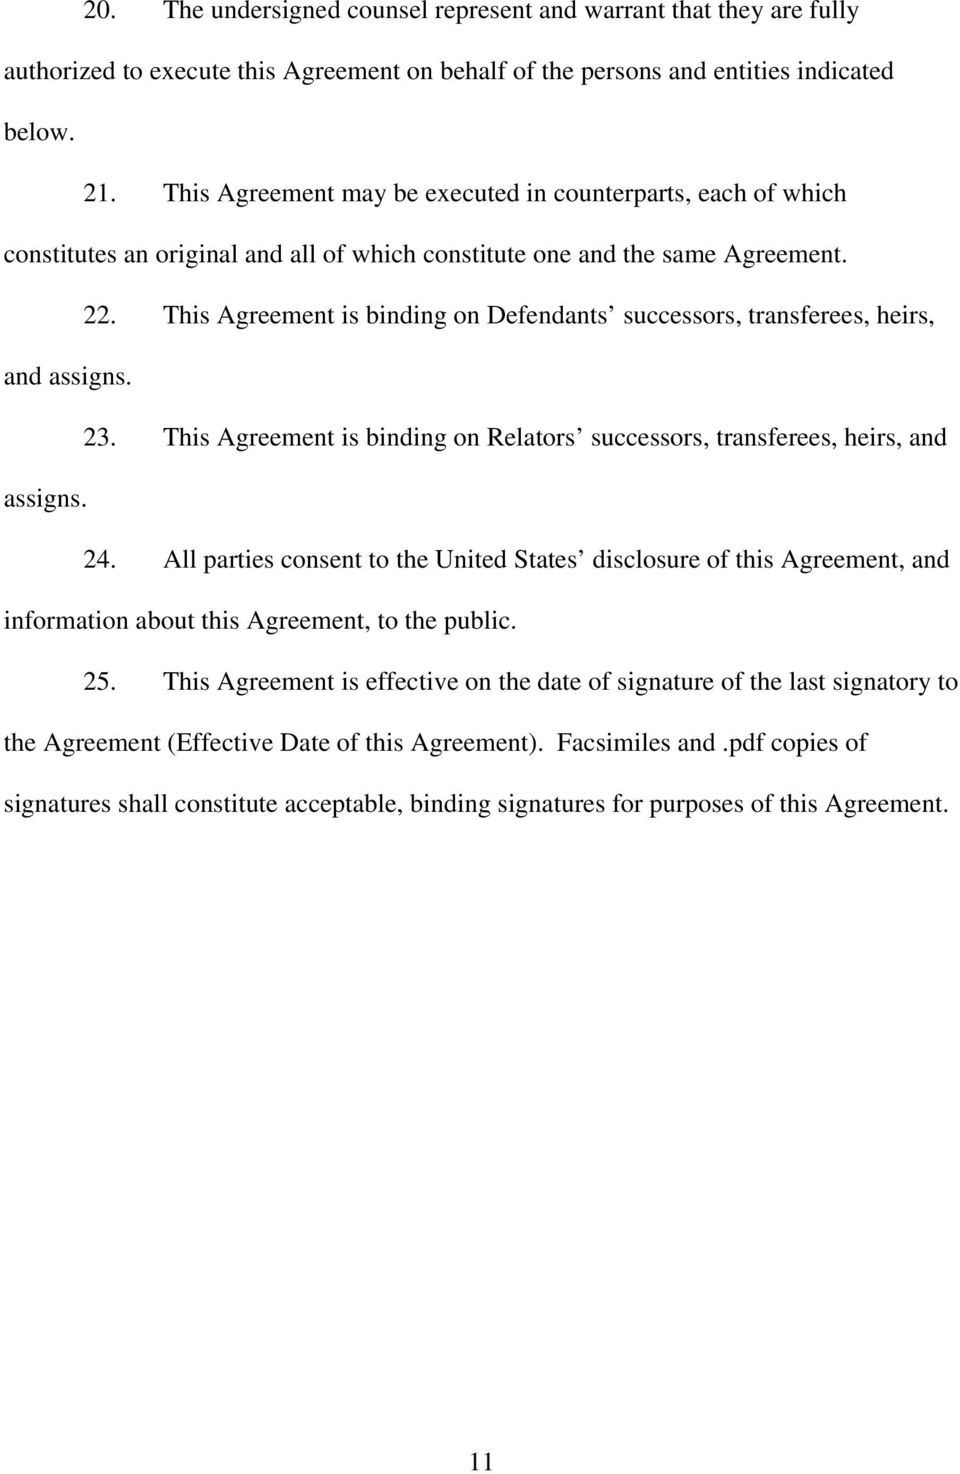 This Agreement is binding on Defendants successors, transferees, heirs, and assigns. 23. This Agreement is binding on Relators successors, transferees, heirs, and assigns. 24.